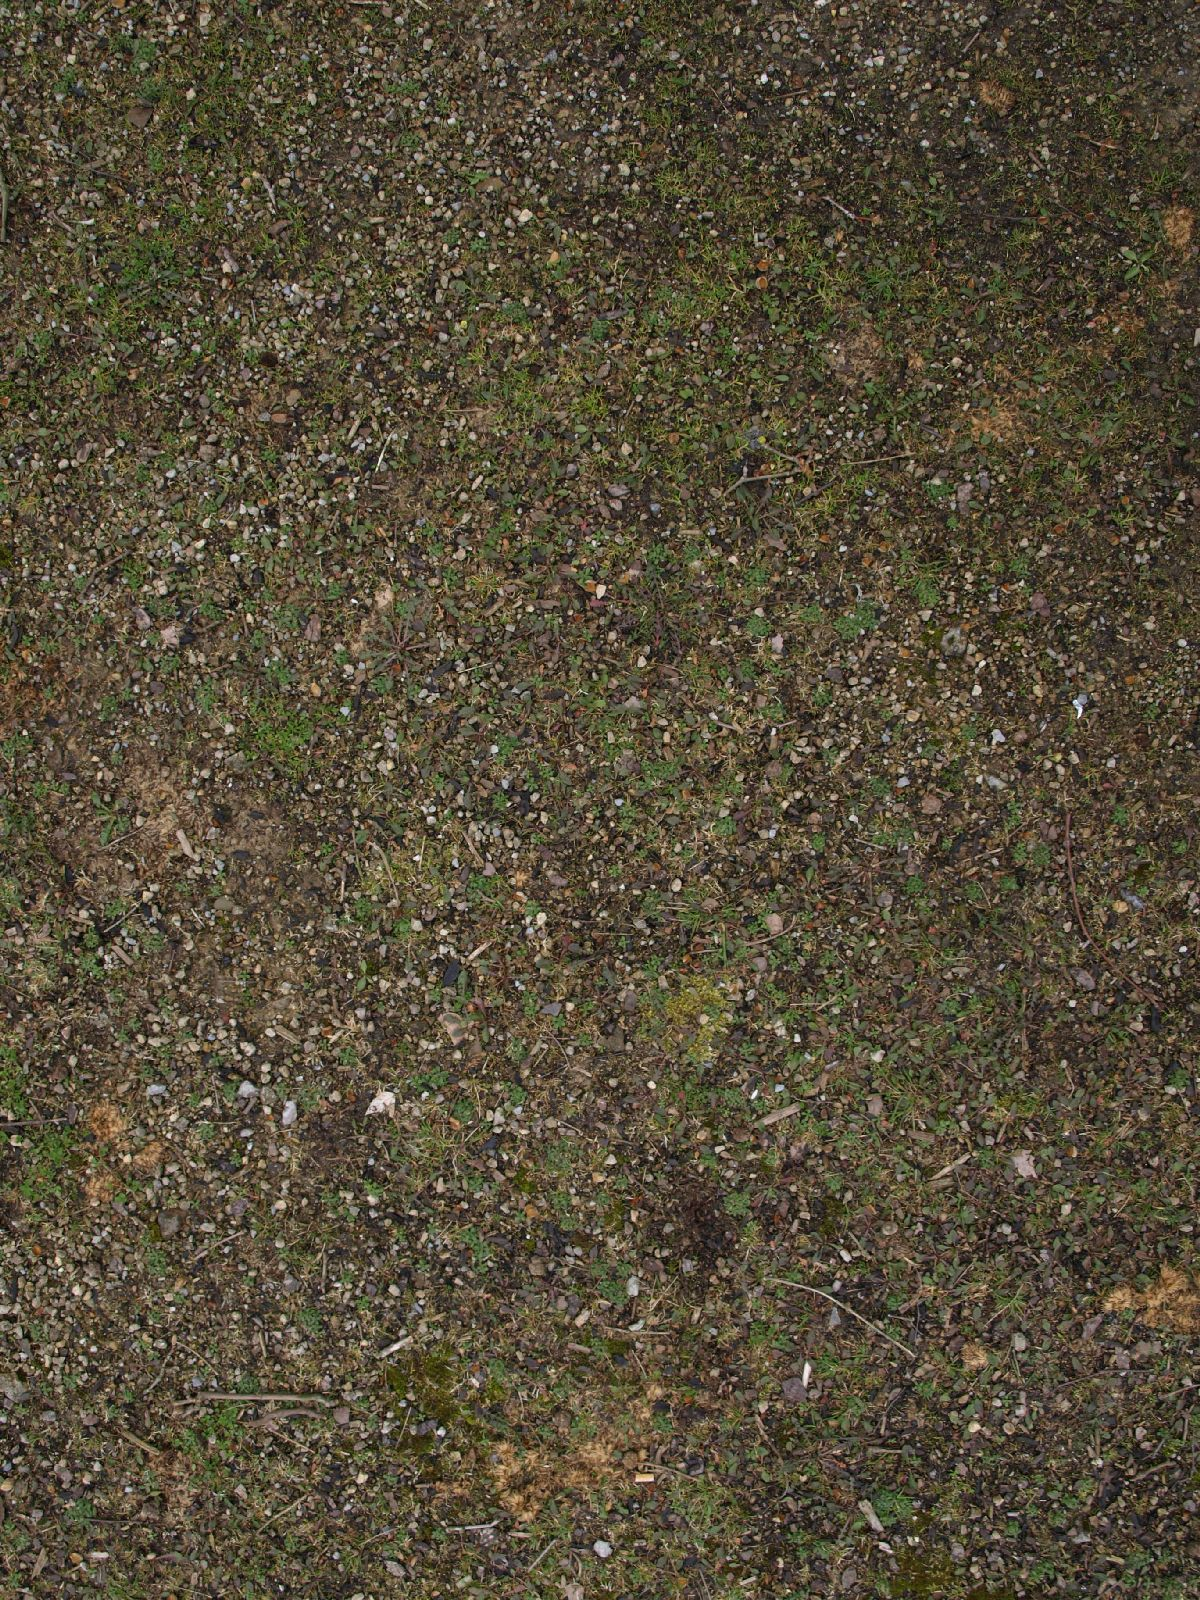 Ground-Nature_Texture_A_P4131106